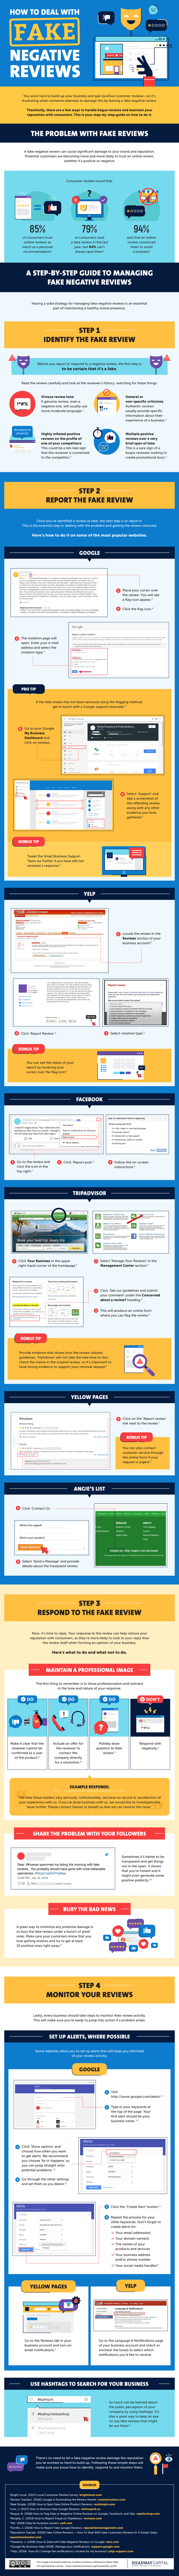 How to Deal With Fake Negative Reviews - infographic